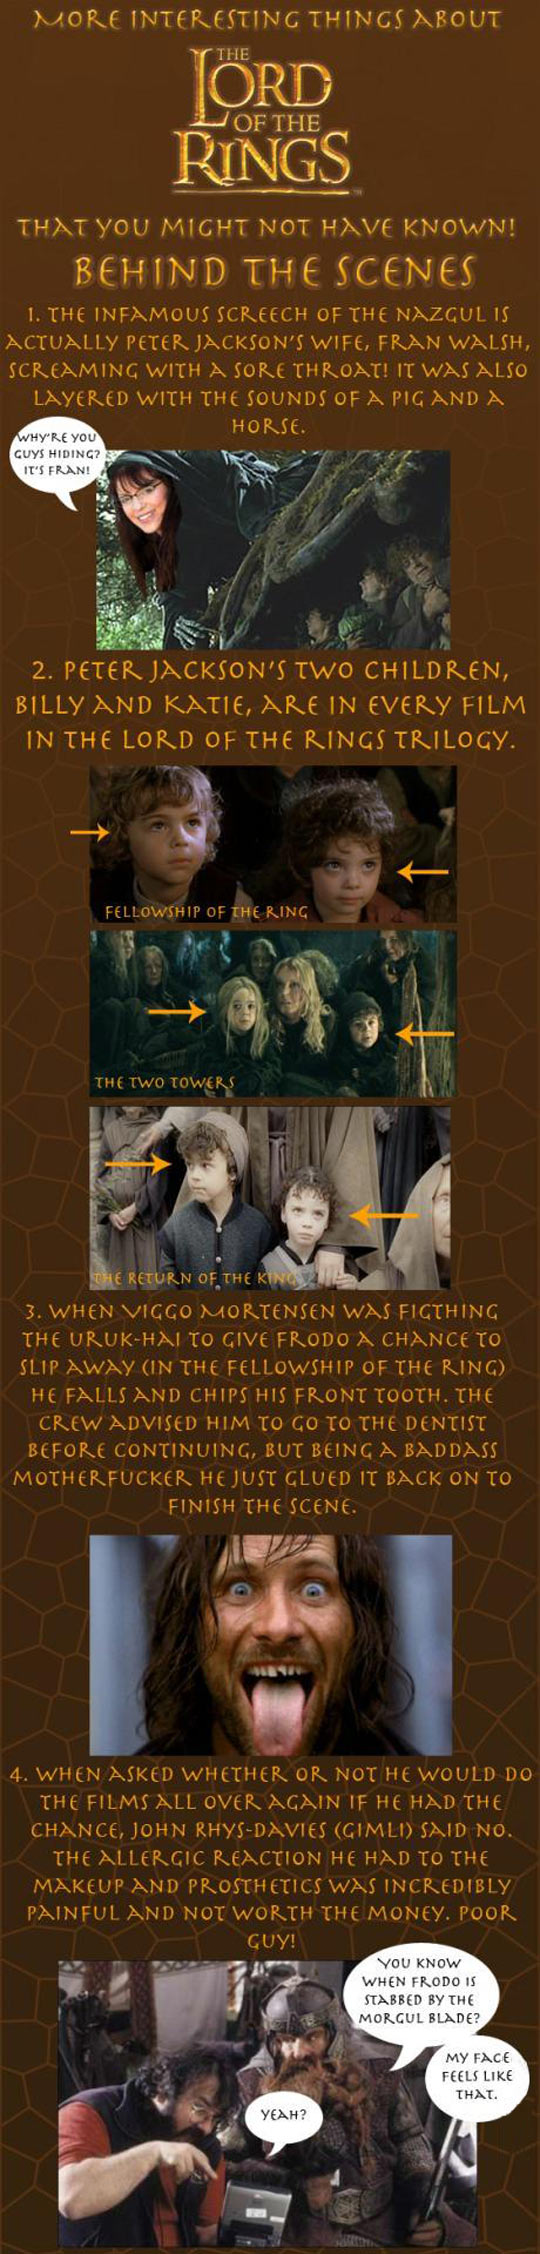 Facts about The Lord of the Rings that you might not have known...